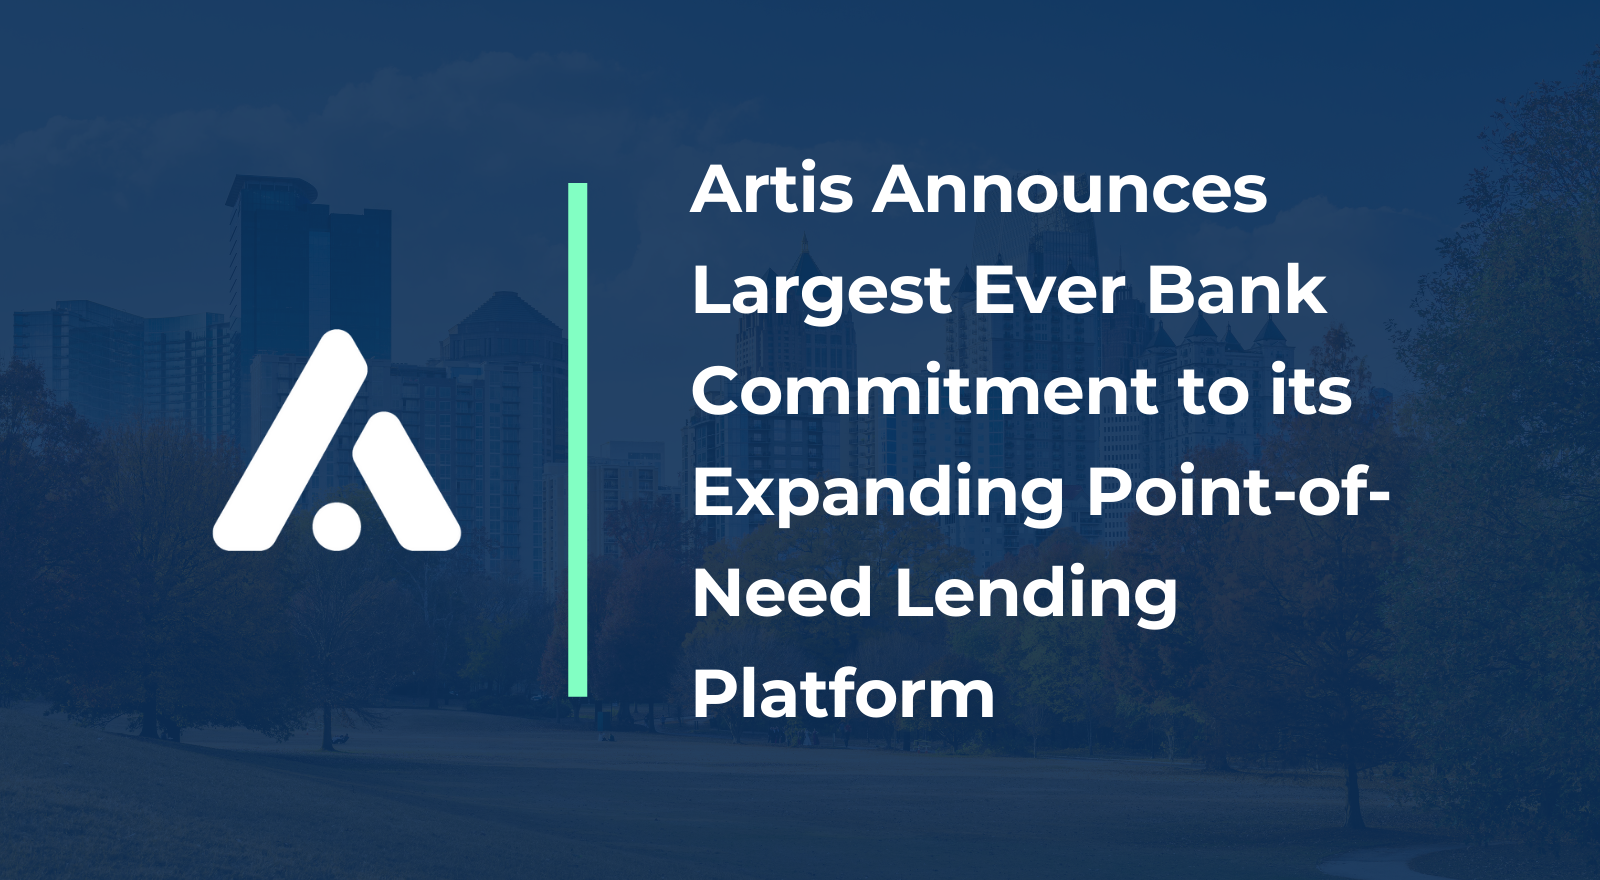 Artis Announces Largest Ever Bank Commitment to its Expanding Point-of-Need Lending Platform